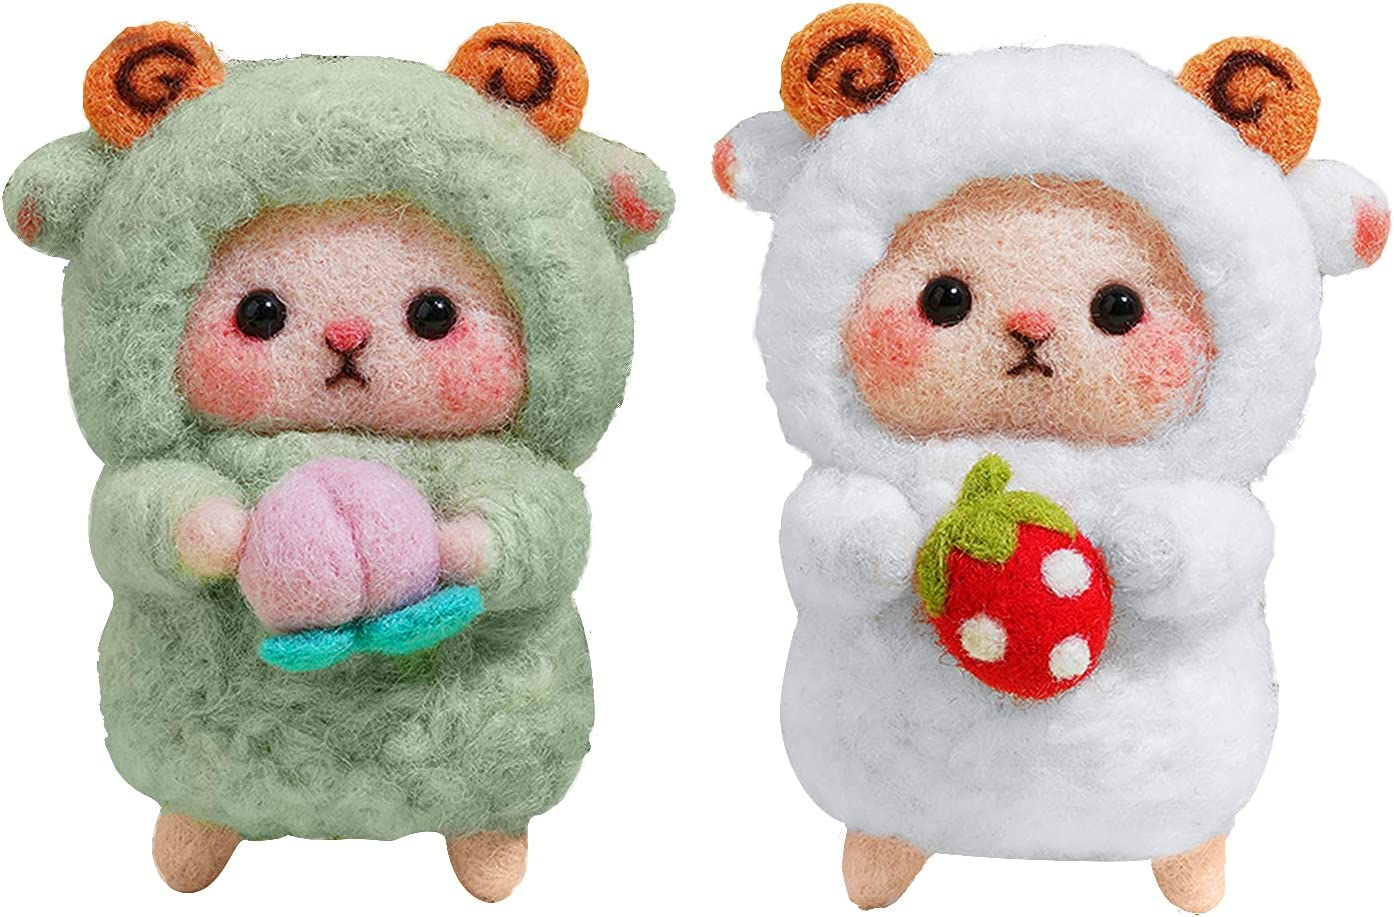 2 Outlet sale feature Set Animal Wool Needle Felting Direct stock discount for Beginner Kit Complete Needl